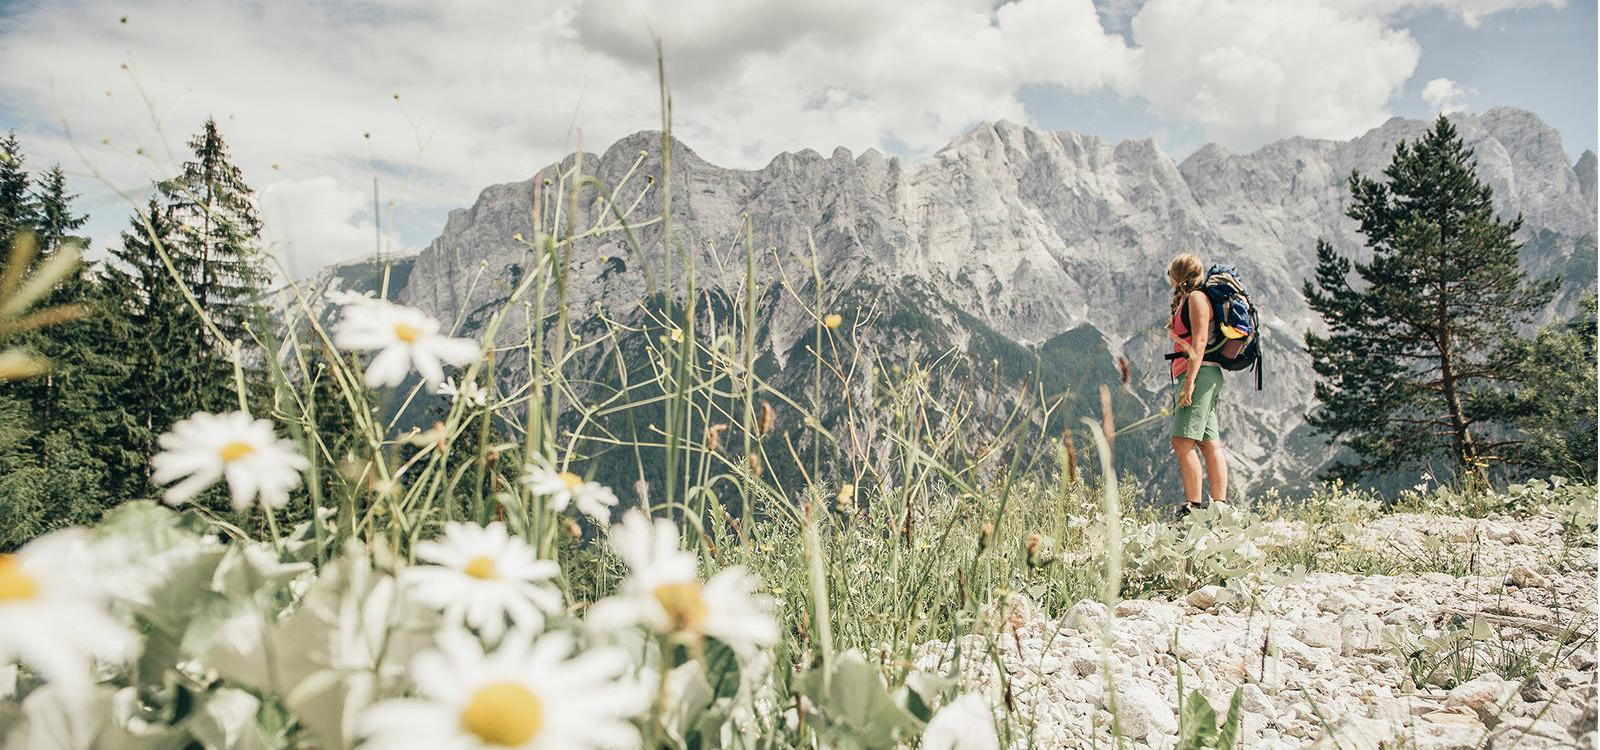 A women with a backpack stands in a meadow with flowers and stones and is looks at the mountains